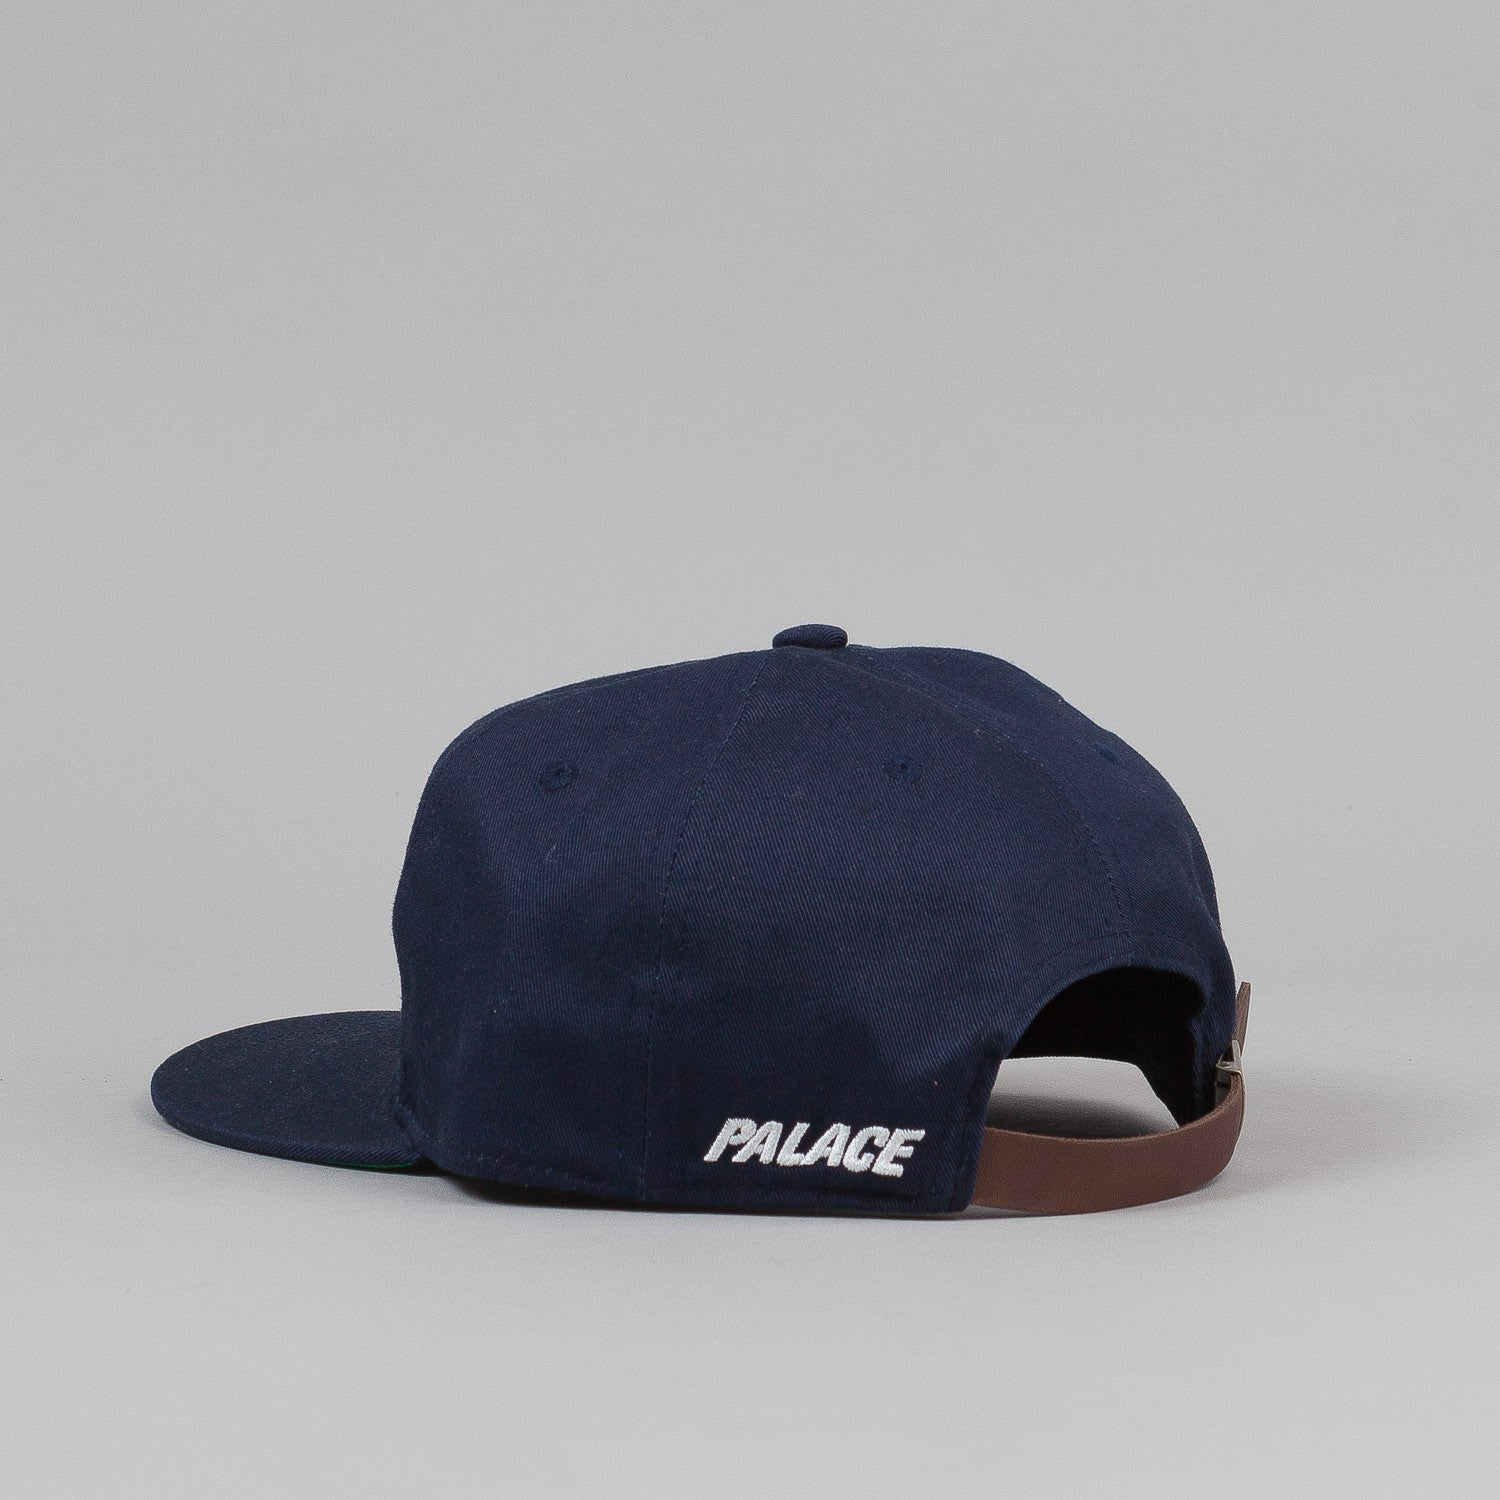 Palace 6 Panel Cap - Navy